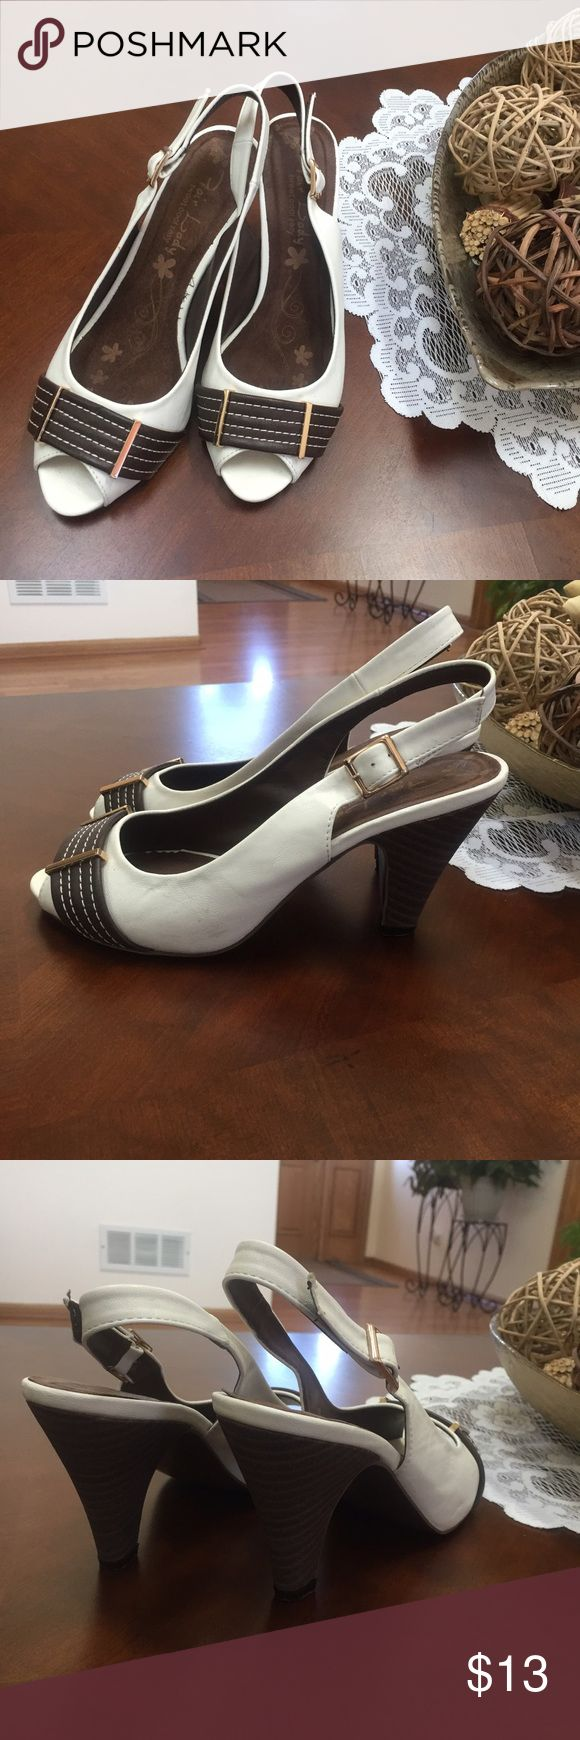 White and Brown Slingback Heeled Sandals Worn once inside * Like new * EU size 38 US size 7.5 * Fair Lady Shoes Heels